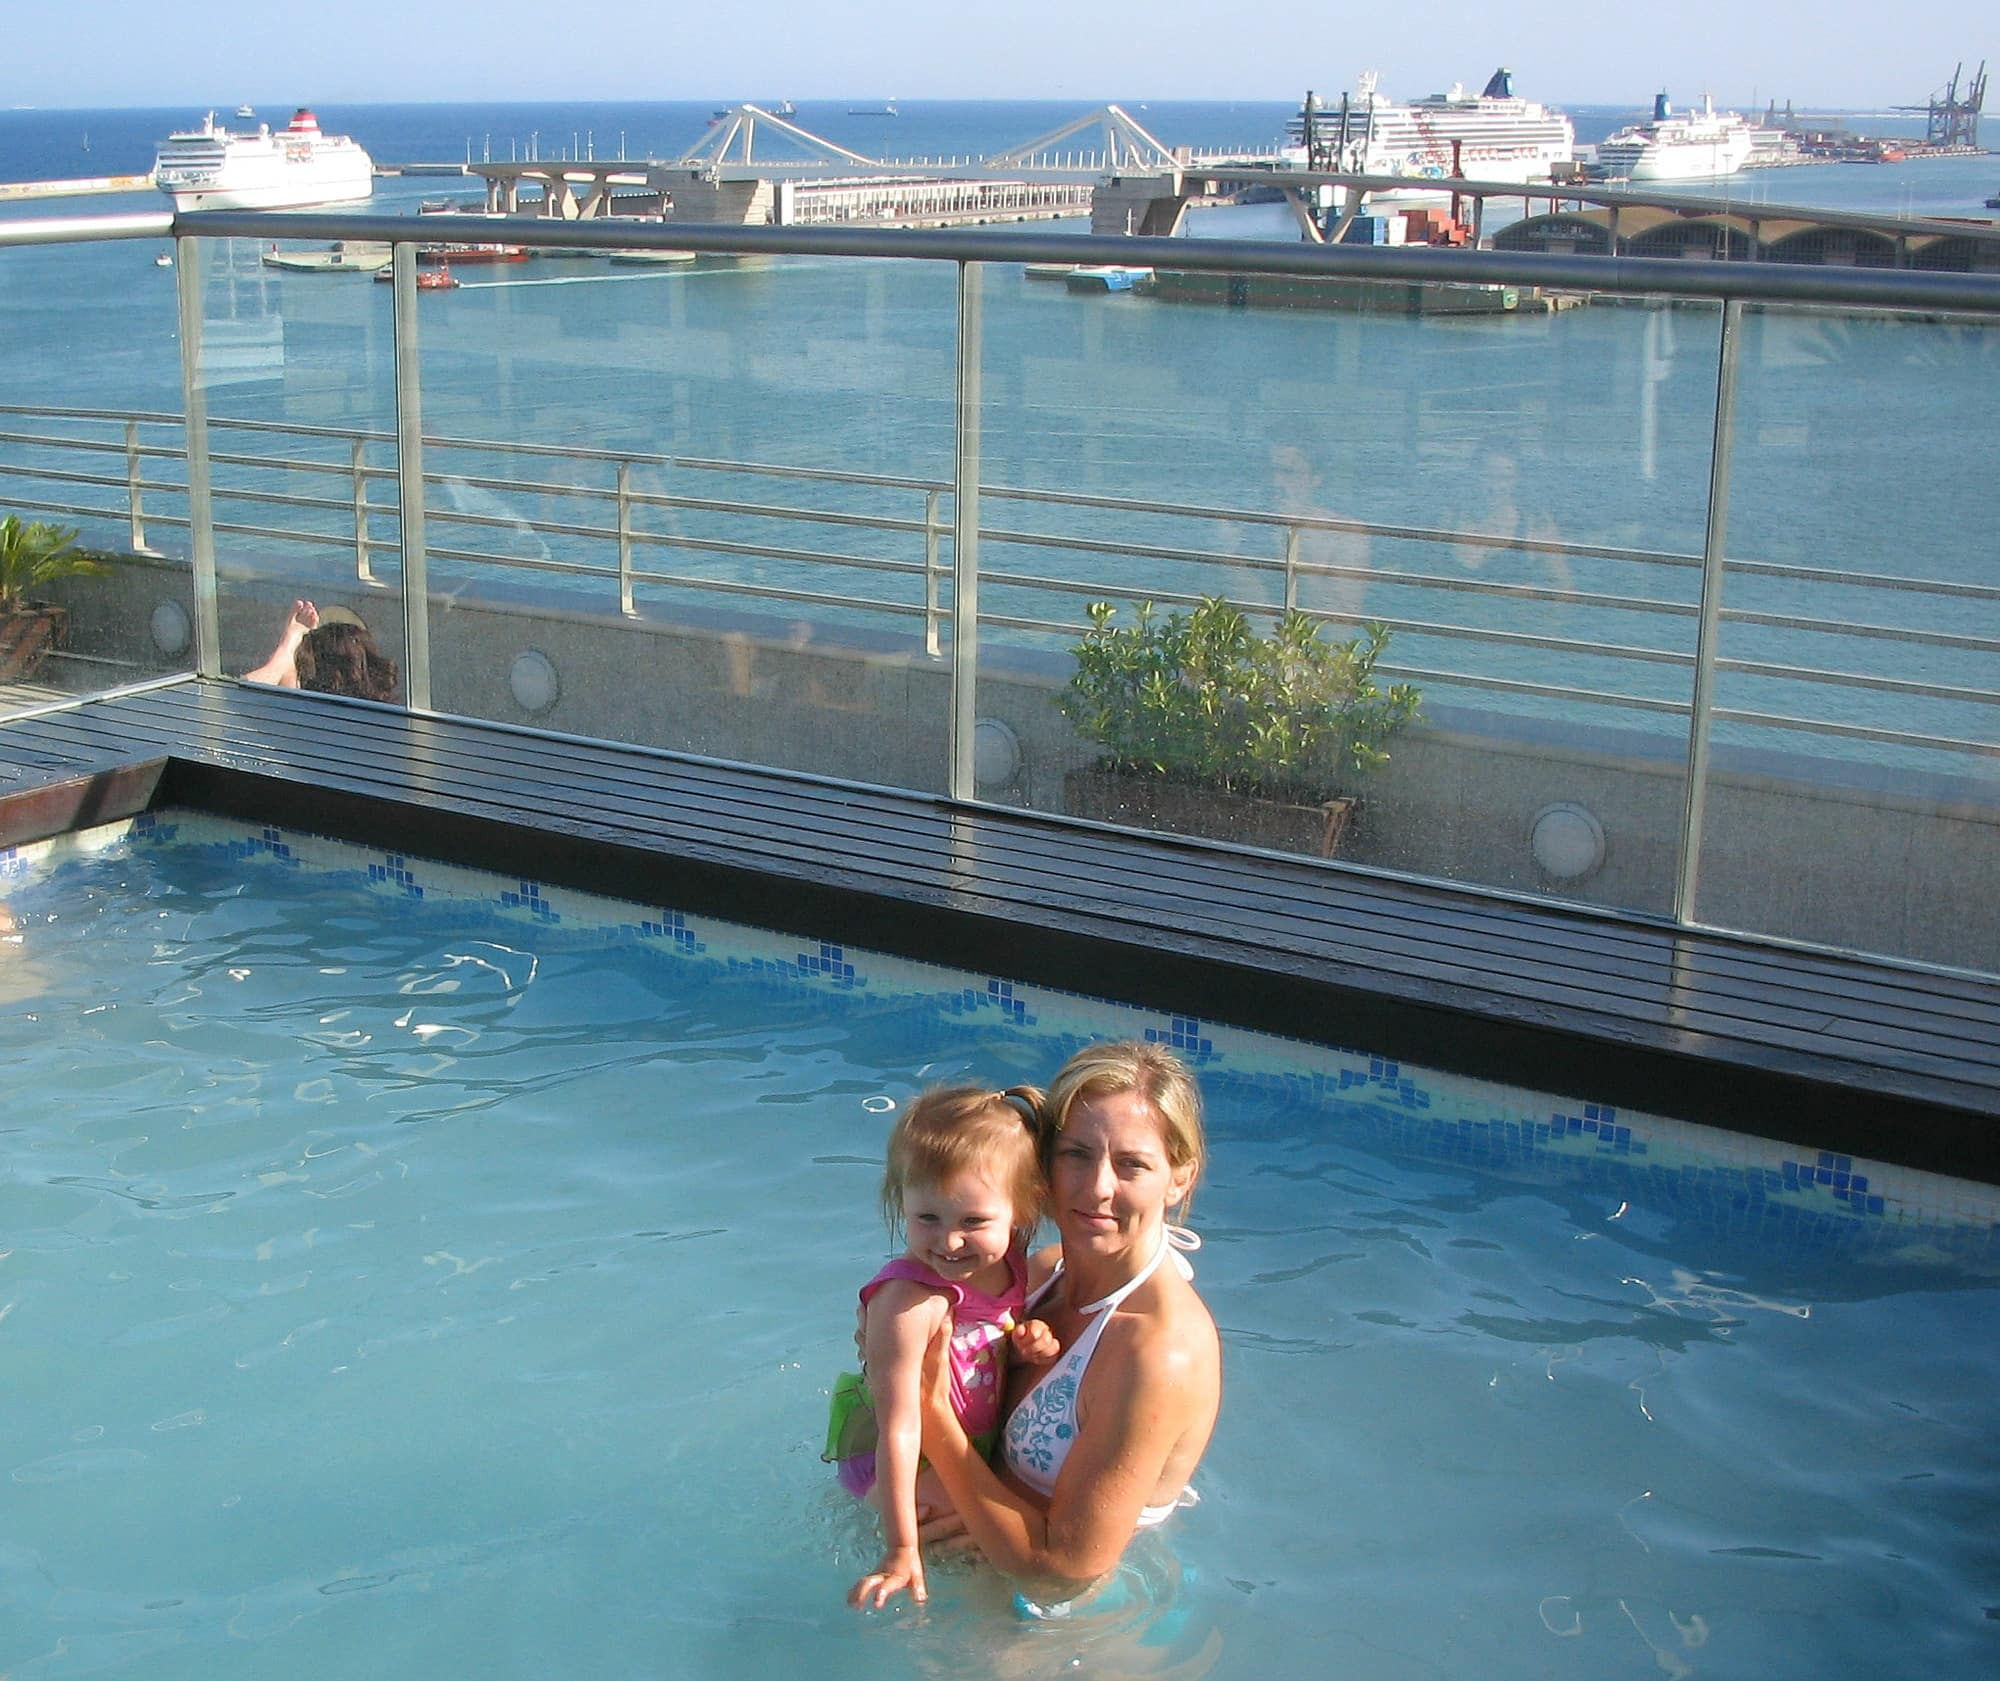 The rooftop pool at the Grand Marina Hotel in Barcelona with kids